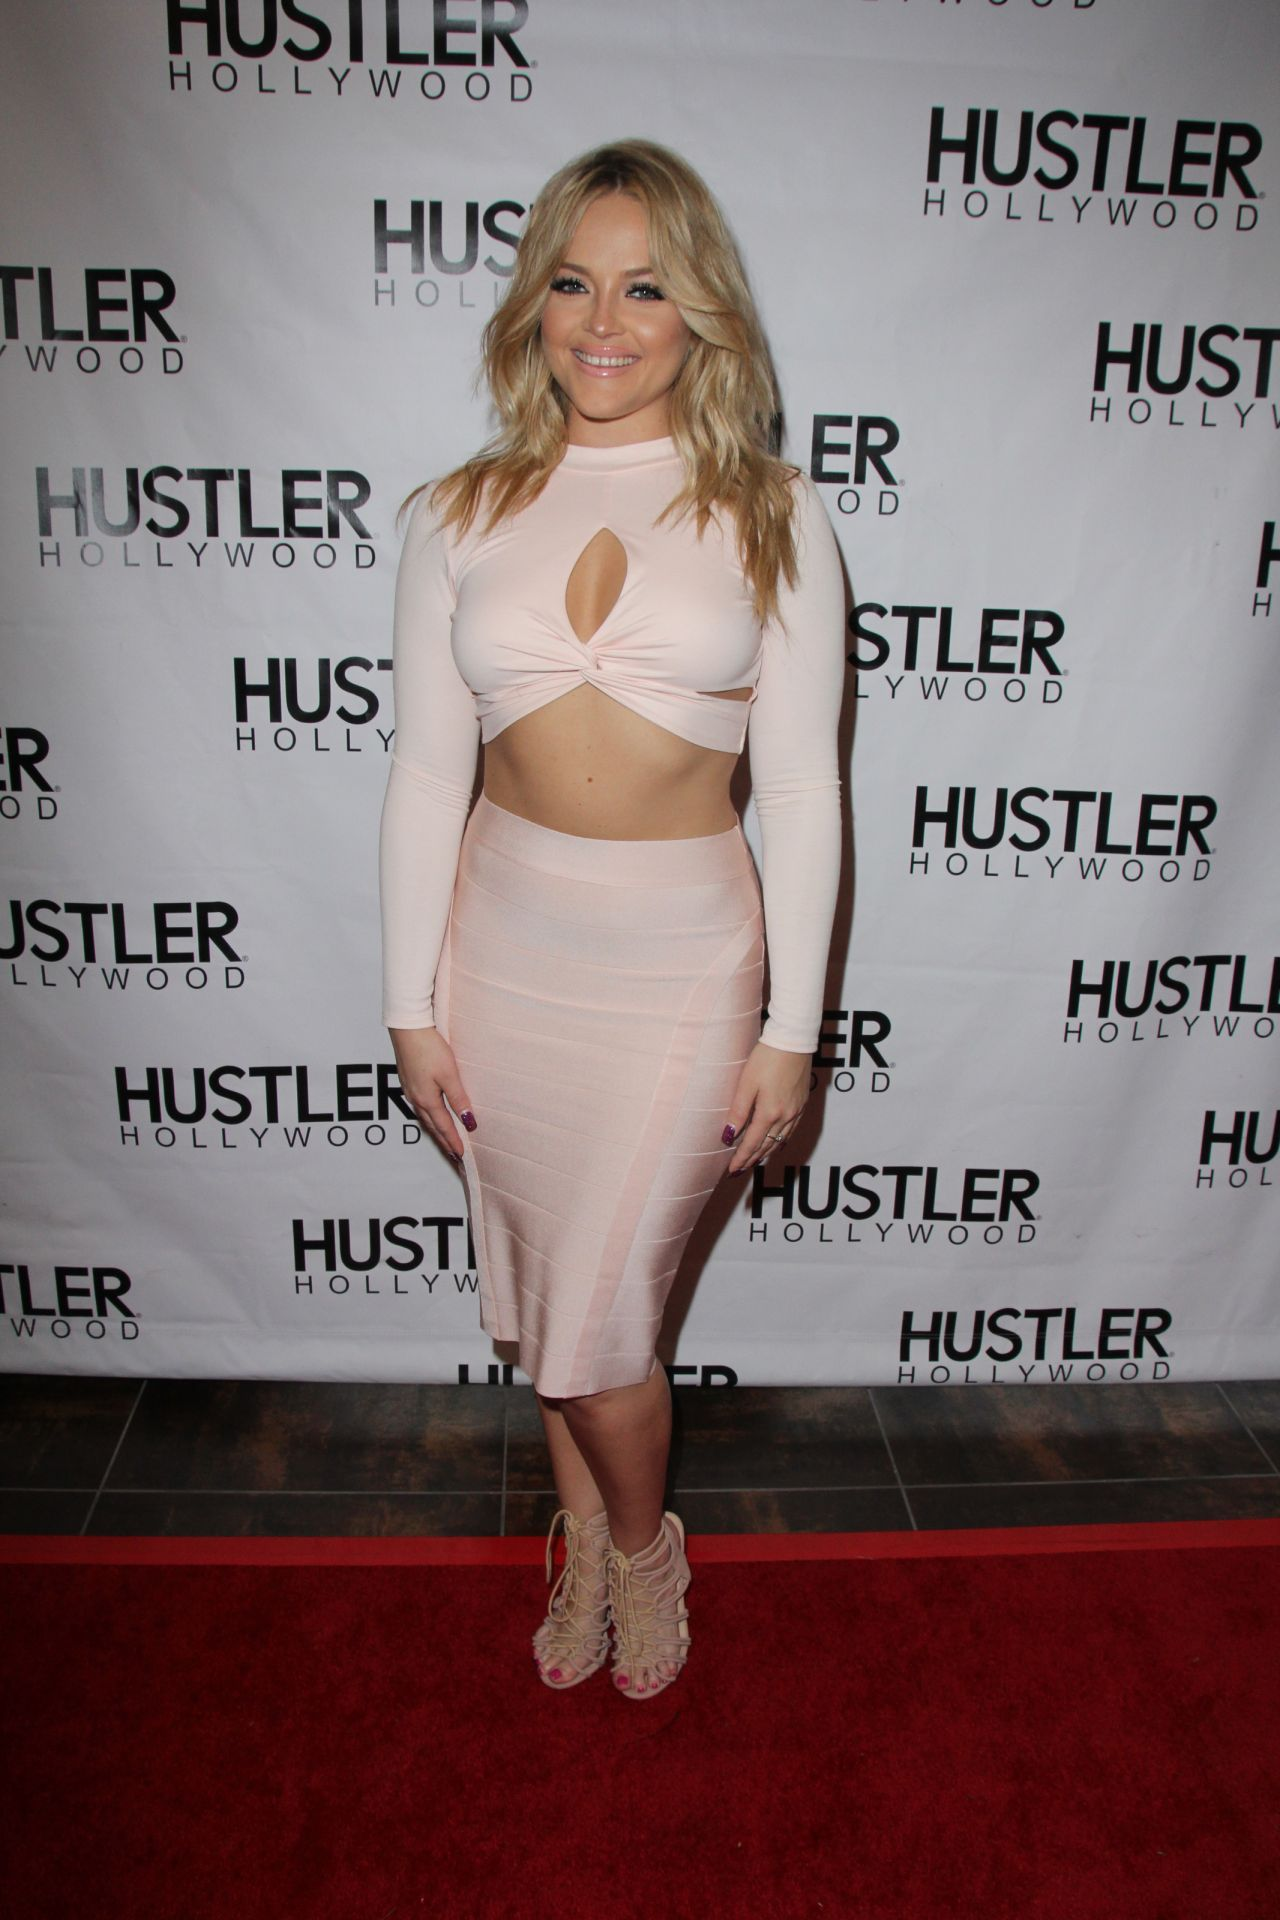 Alexis Texas Opening Of The New Hustler Hollywood 4 9 2016